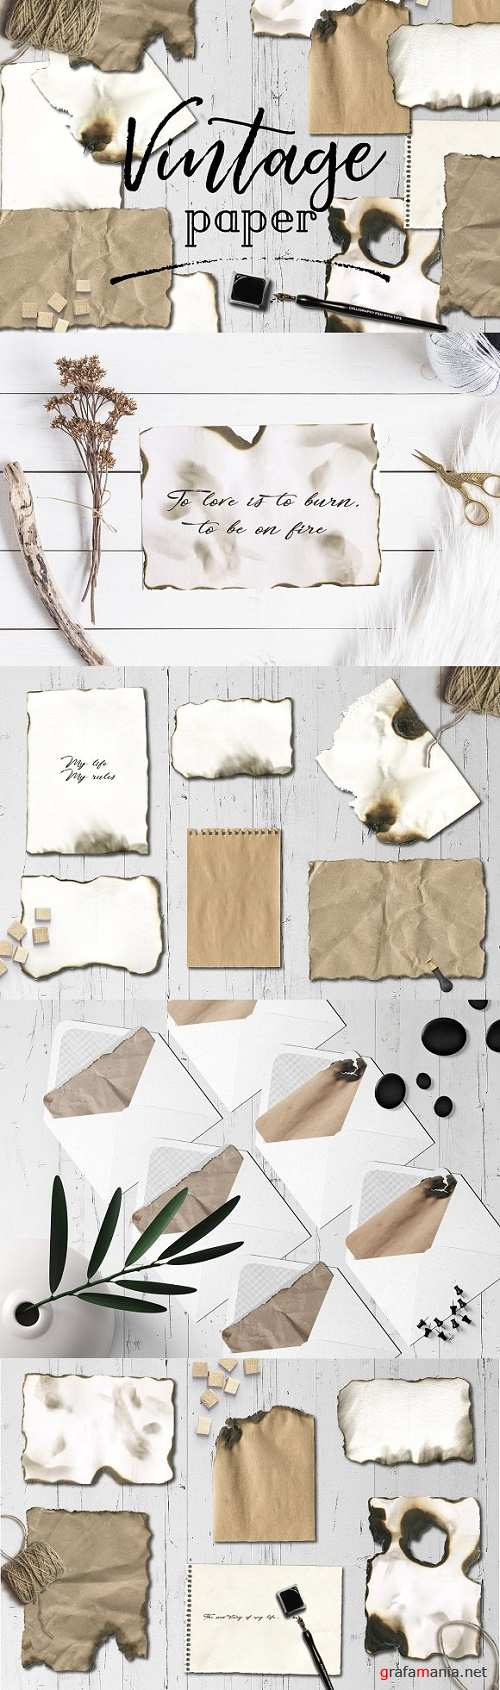 Old paper burn texture backgrounds 2457452